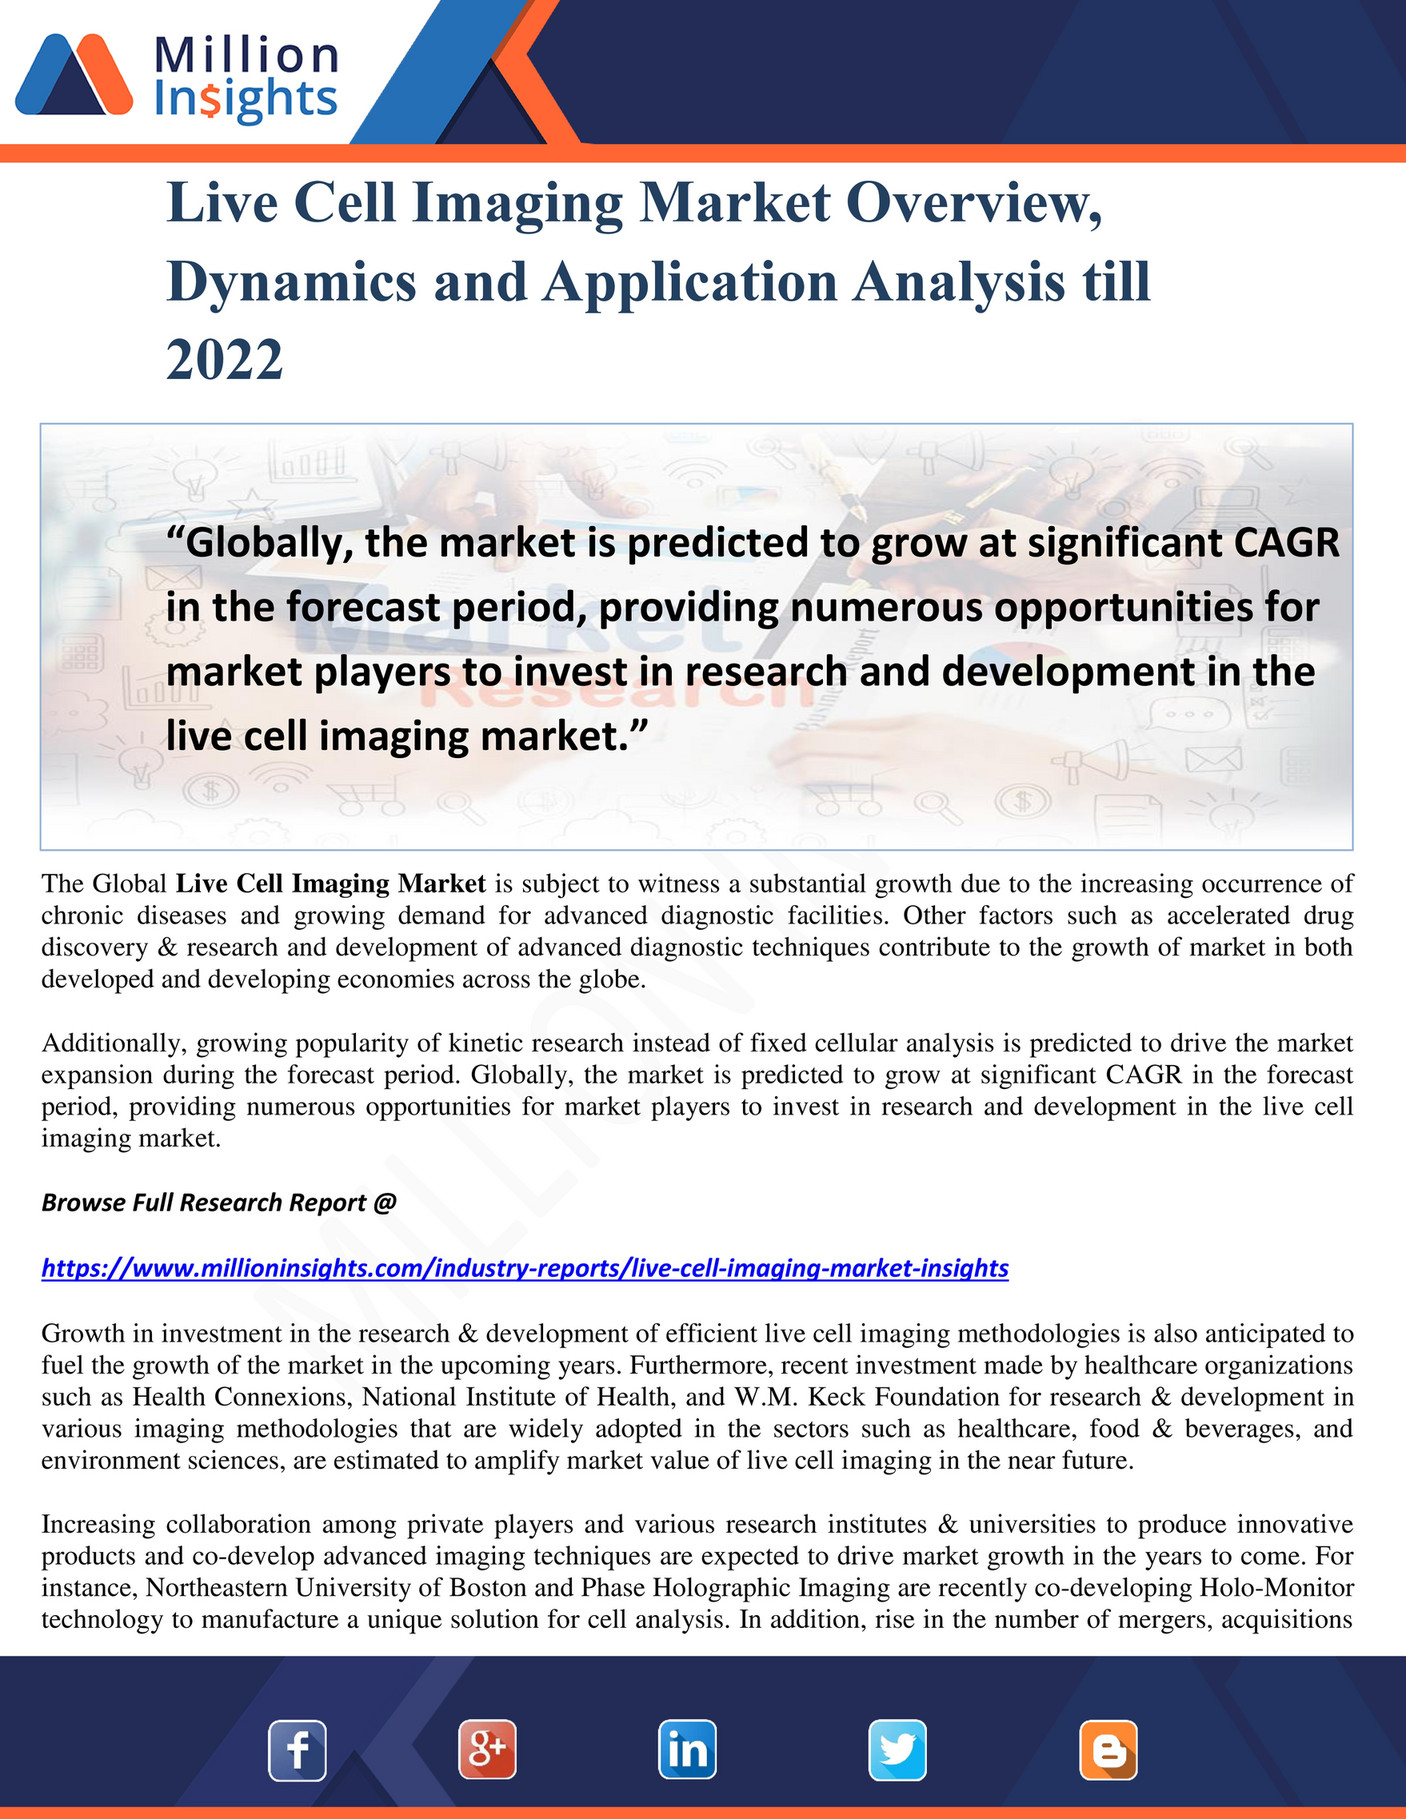 Million Insights - Live Cell Imaging Market Overview